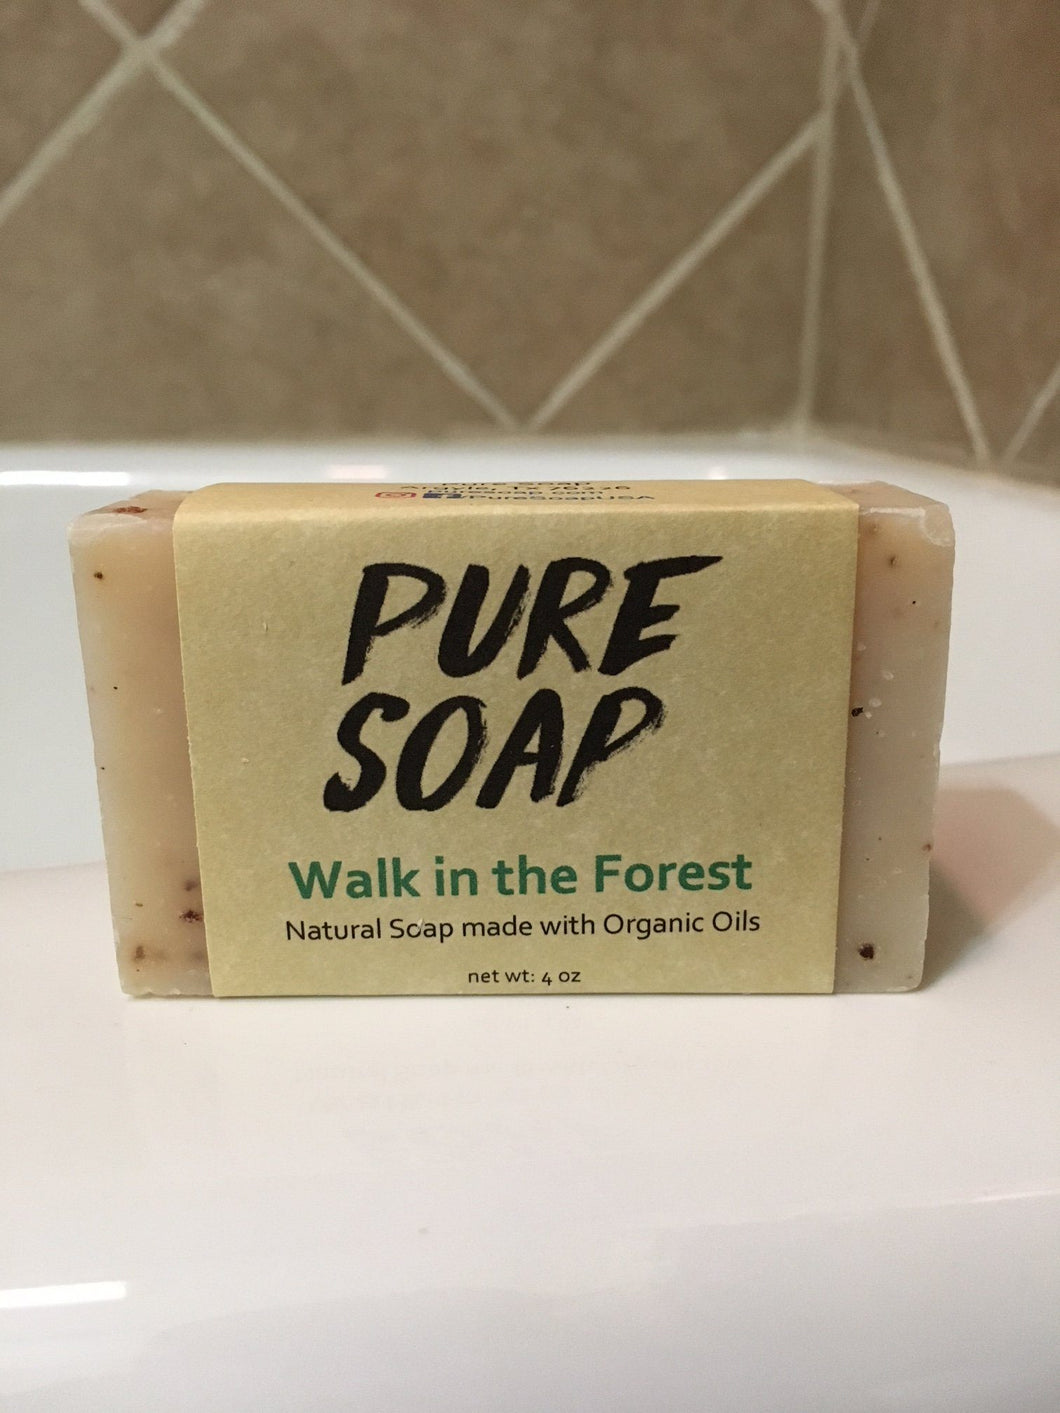 walk in the forest outdoors scented organic bar soap